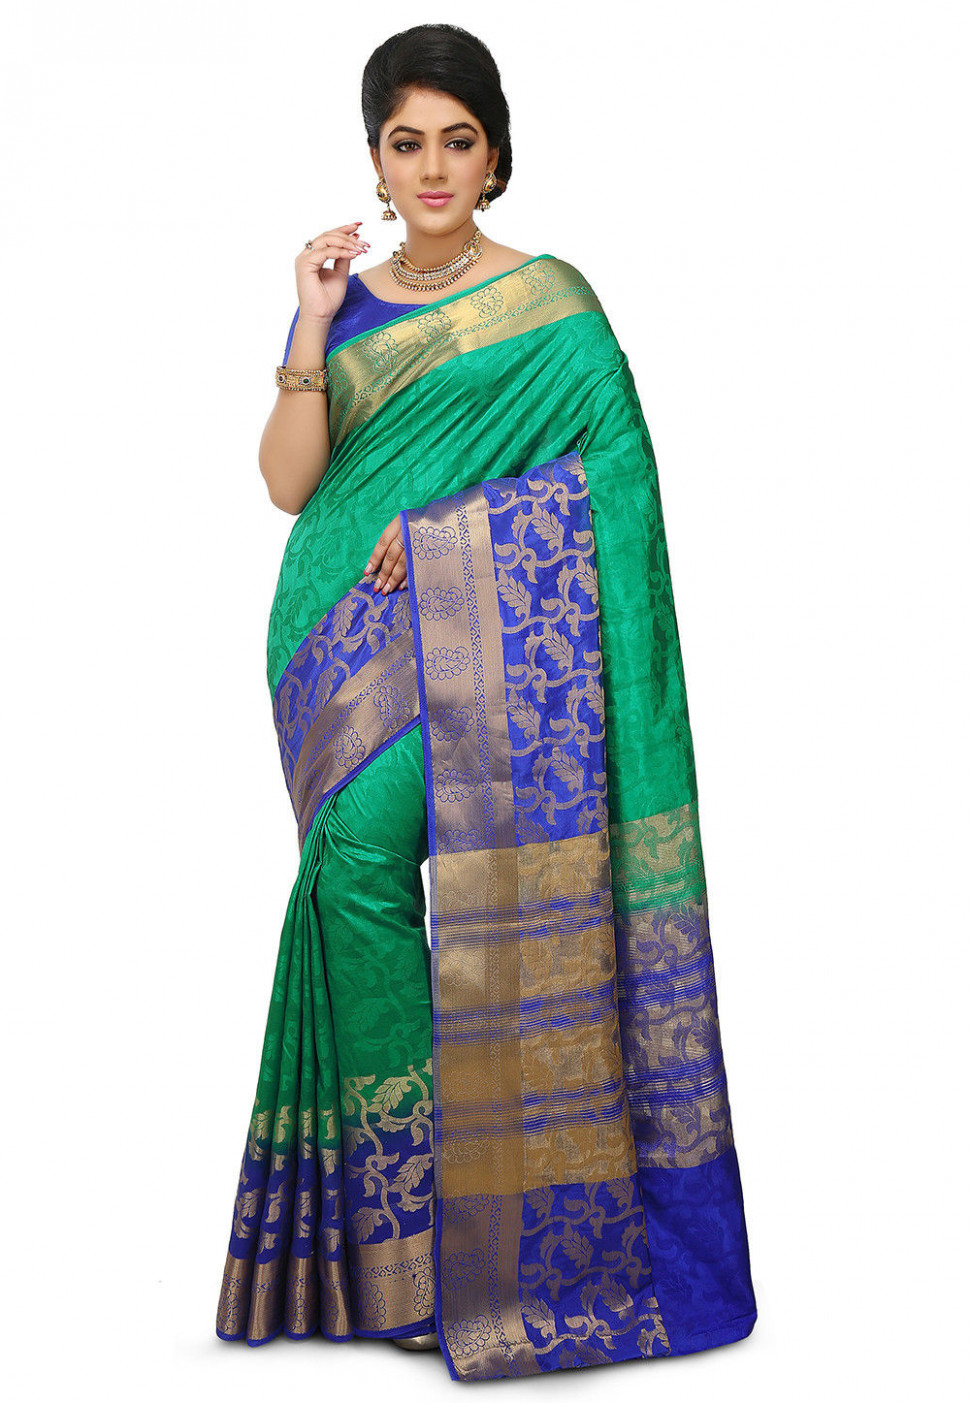 Woven Bangalore Silk Saree in Teal Green : SBRA710